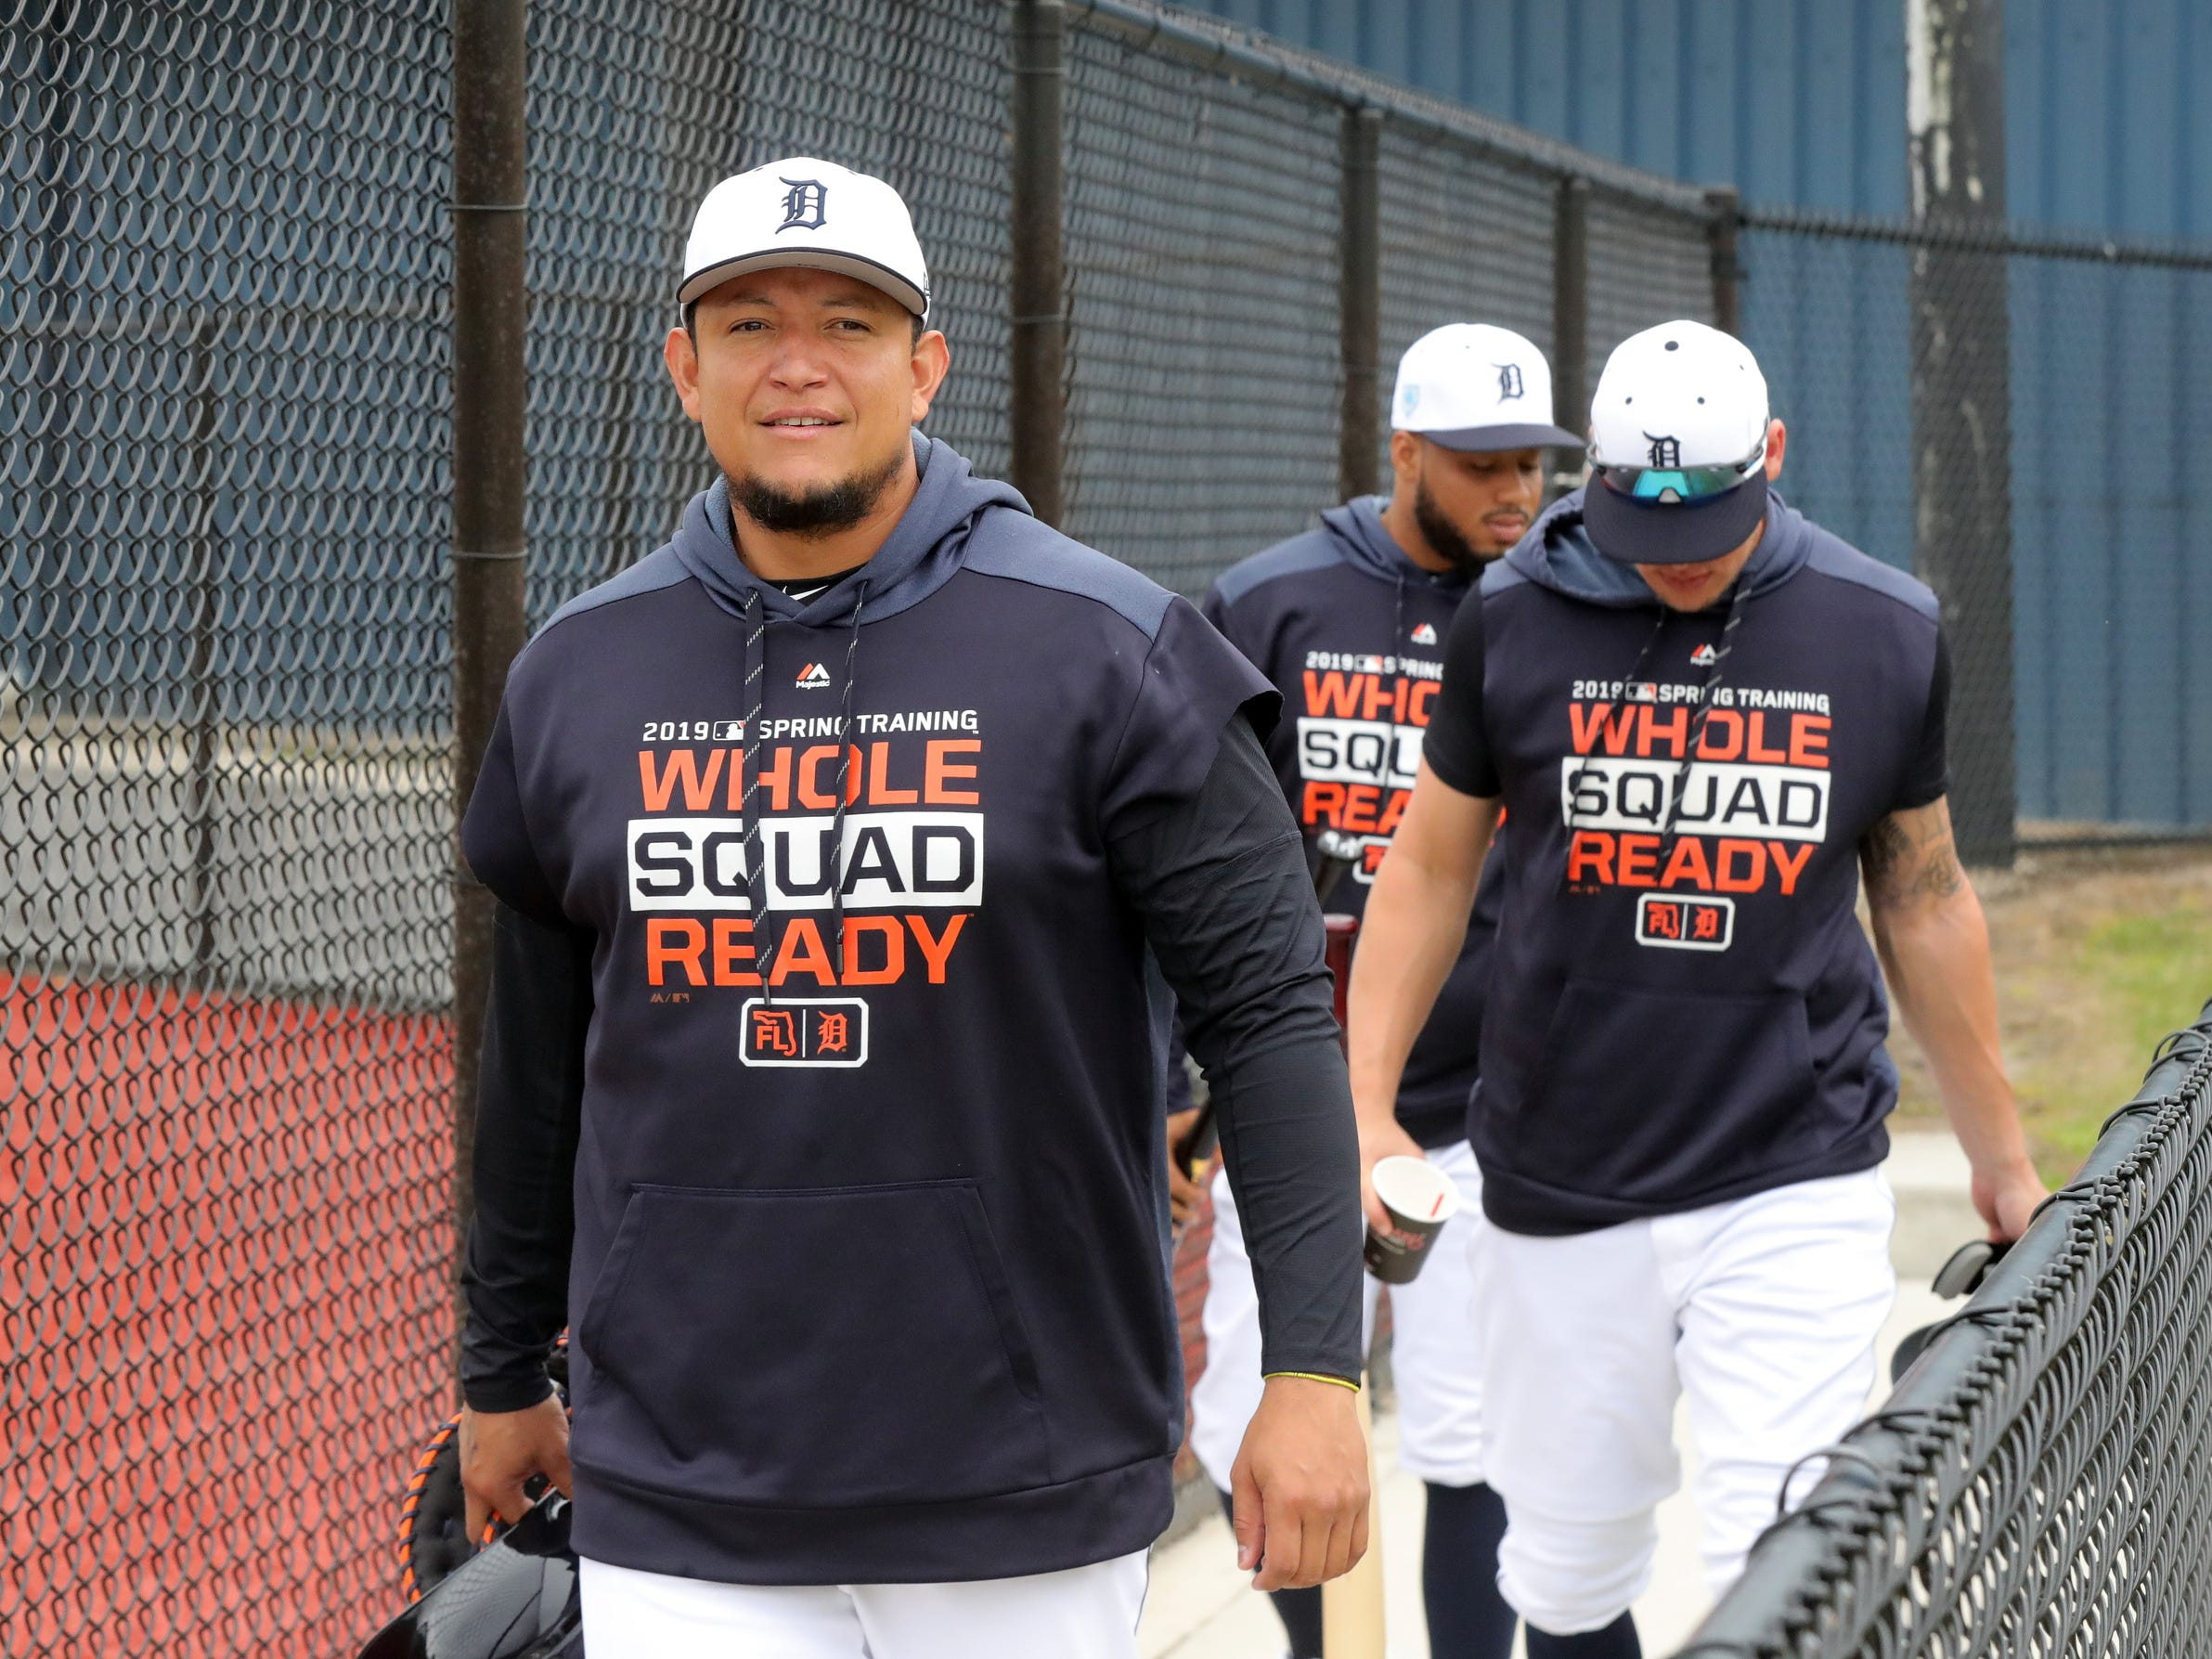 Tigers first baseman Miguel Cabrera walks to the field for the first full team spring training practice on Monday, Feb. 18, 2019, at Joker Marchant Stadium in Lakeland, Florida.